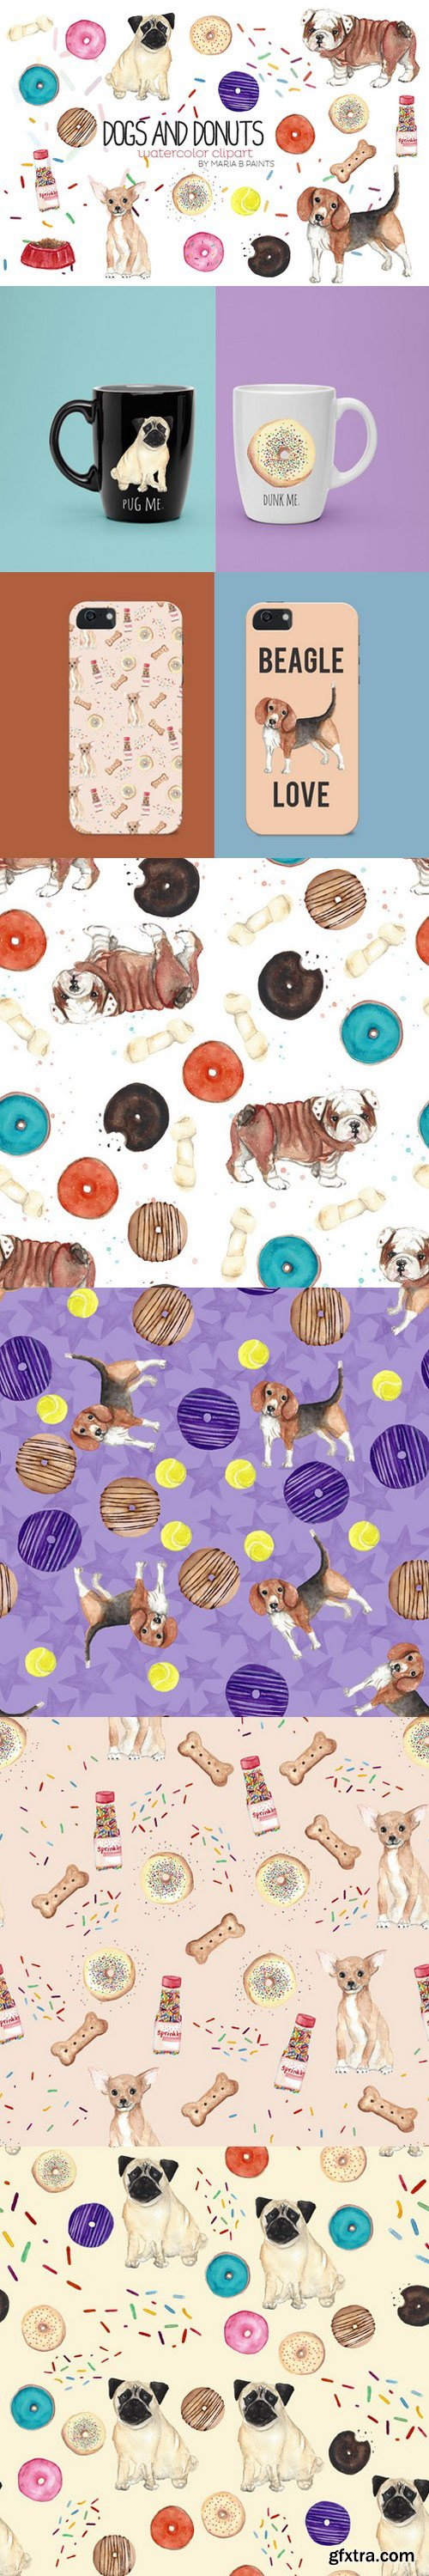 CM - Watercolor Clip Art - Dogs n Donuts 415922